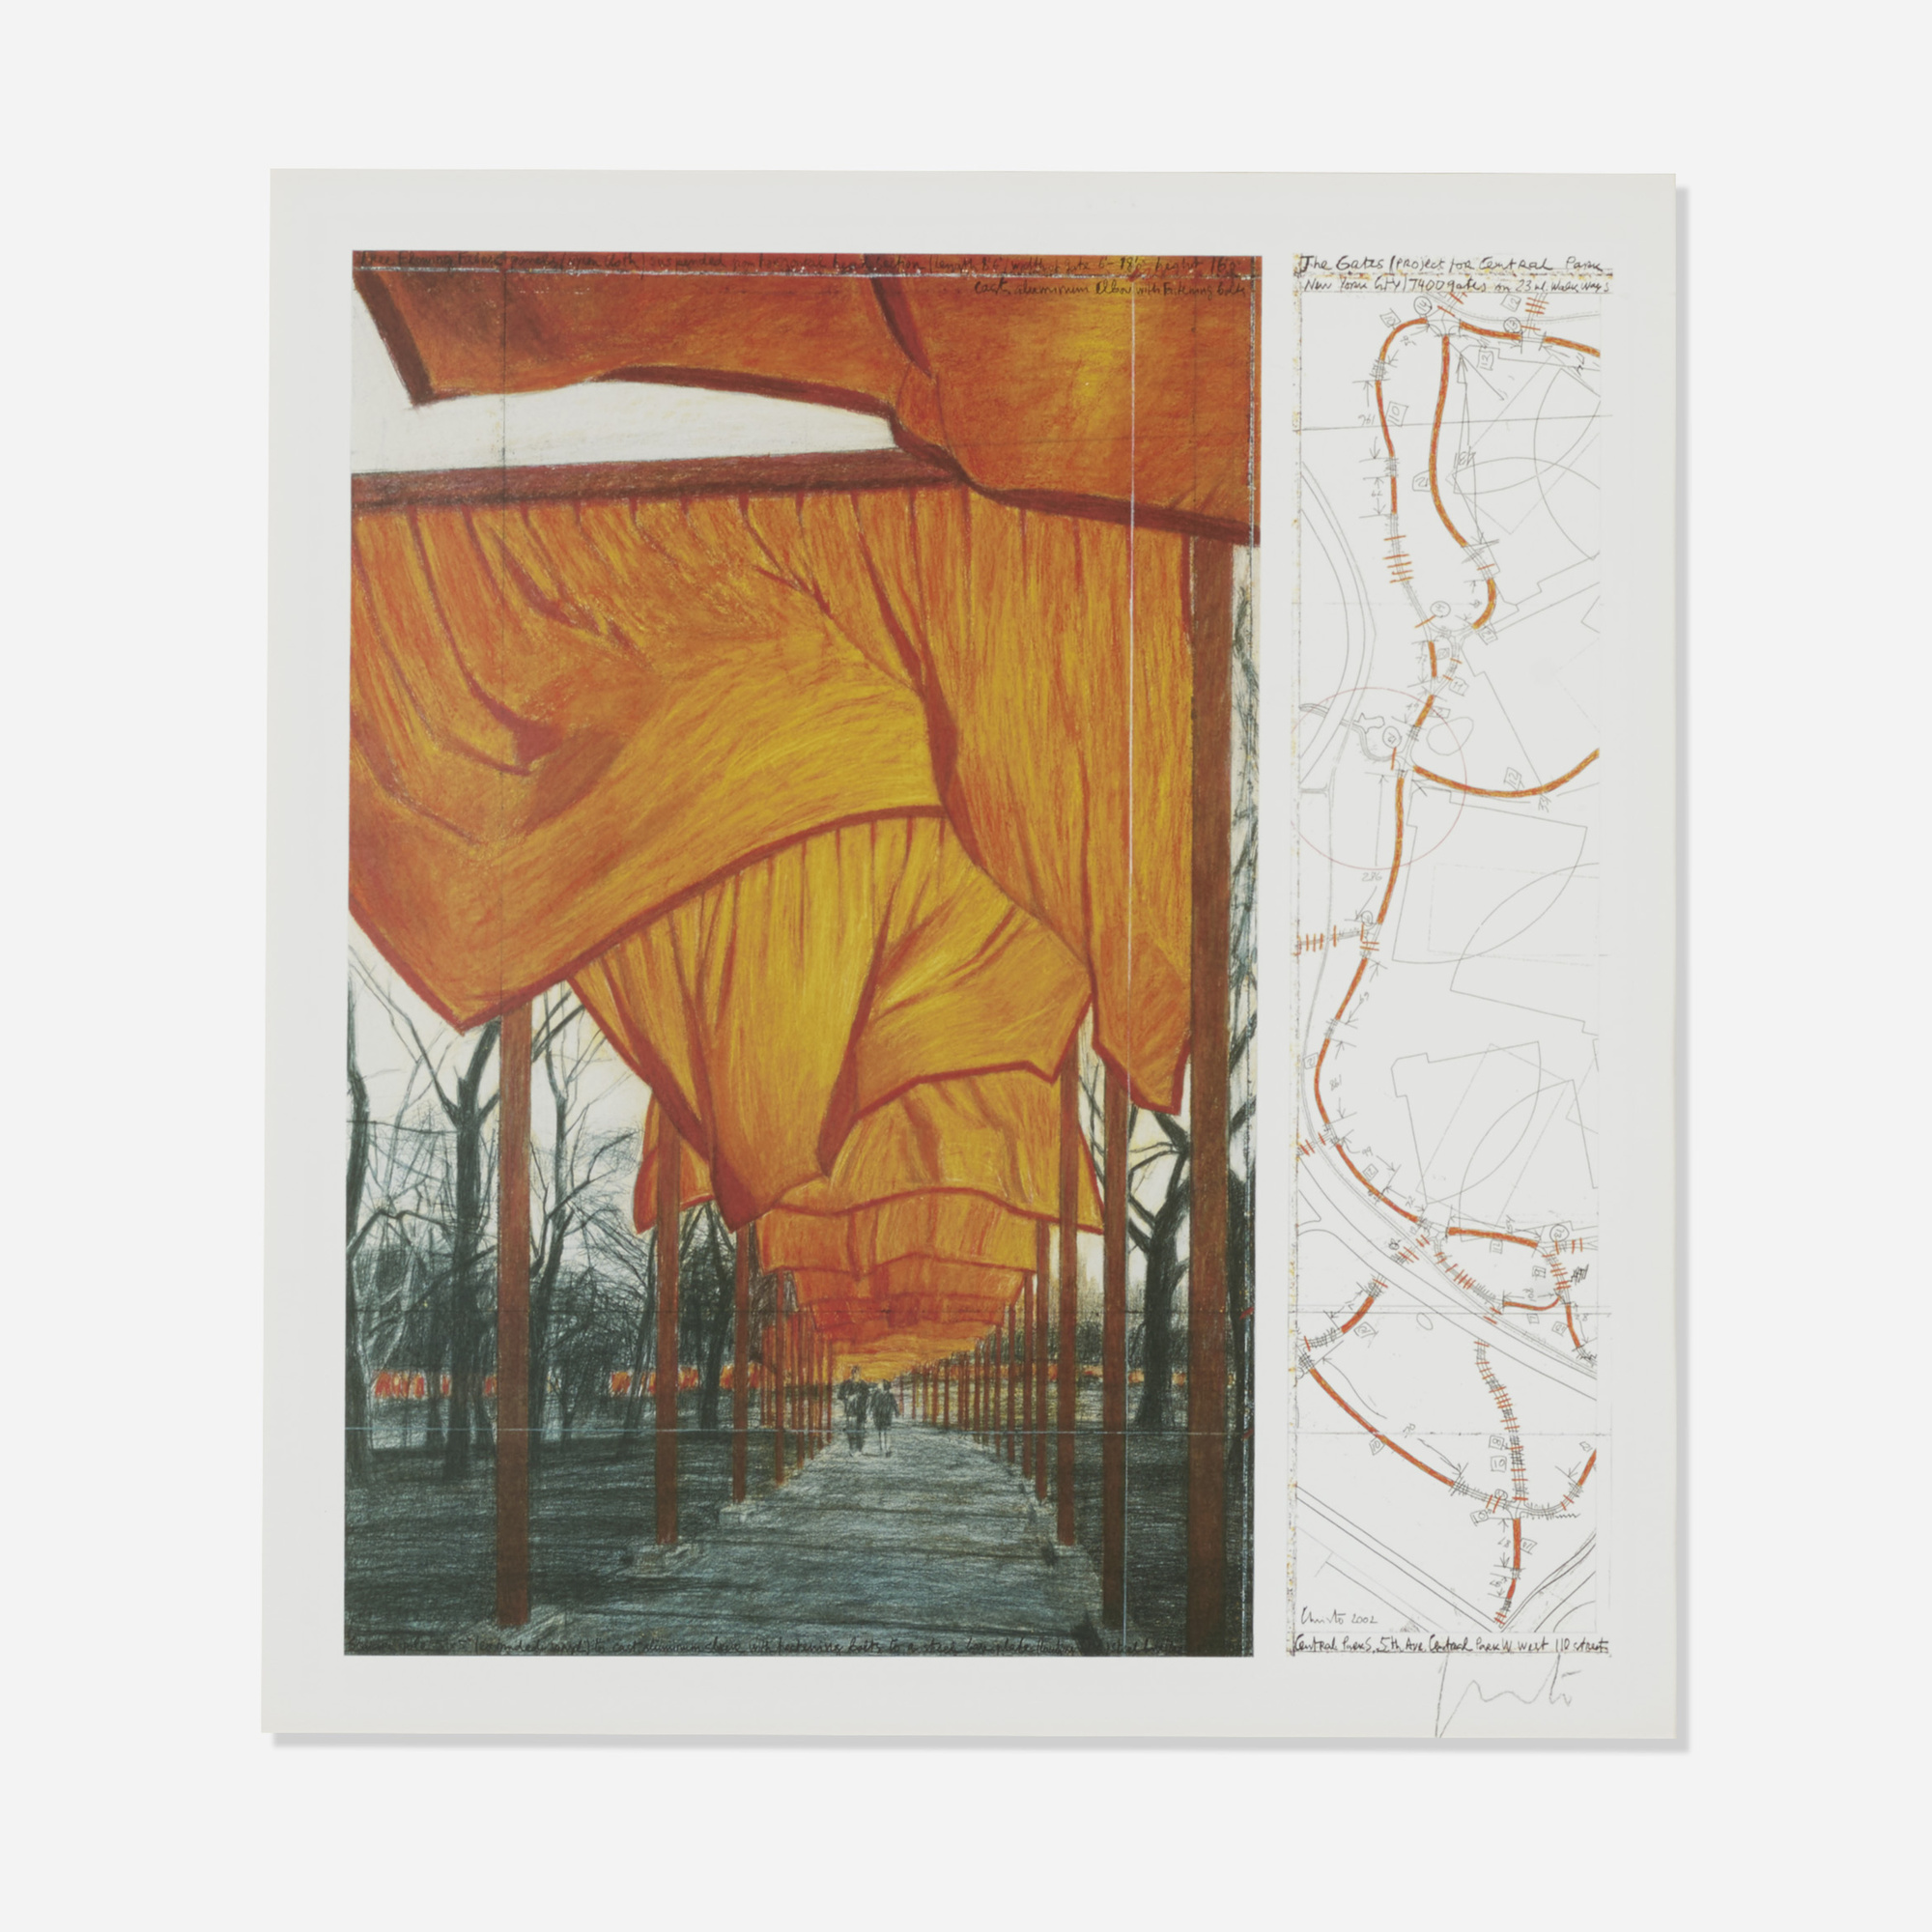 182: Christo / Project for the Gates IV (1 of 1)